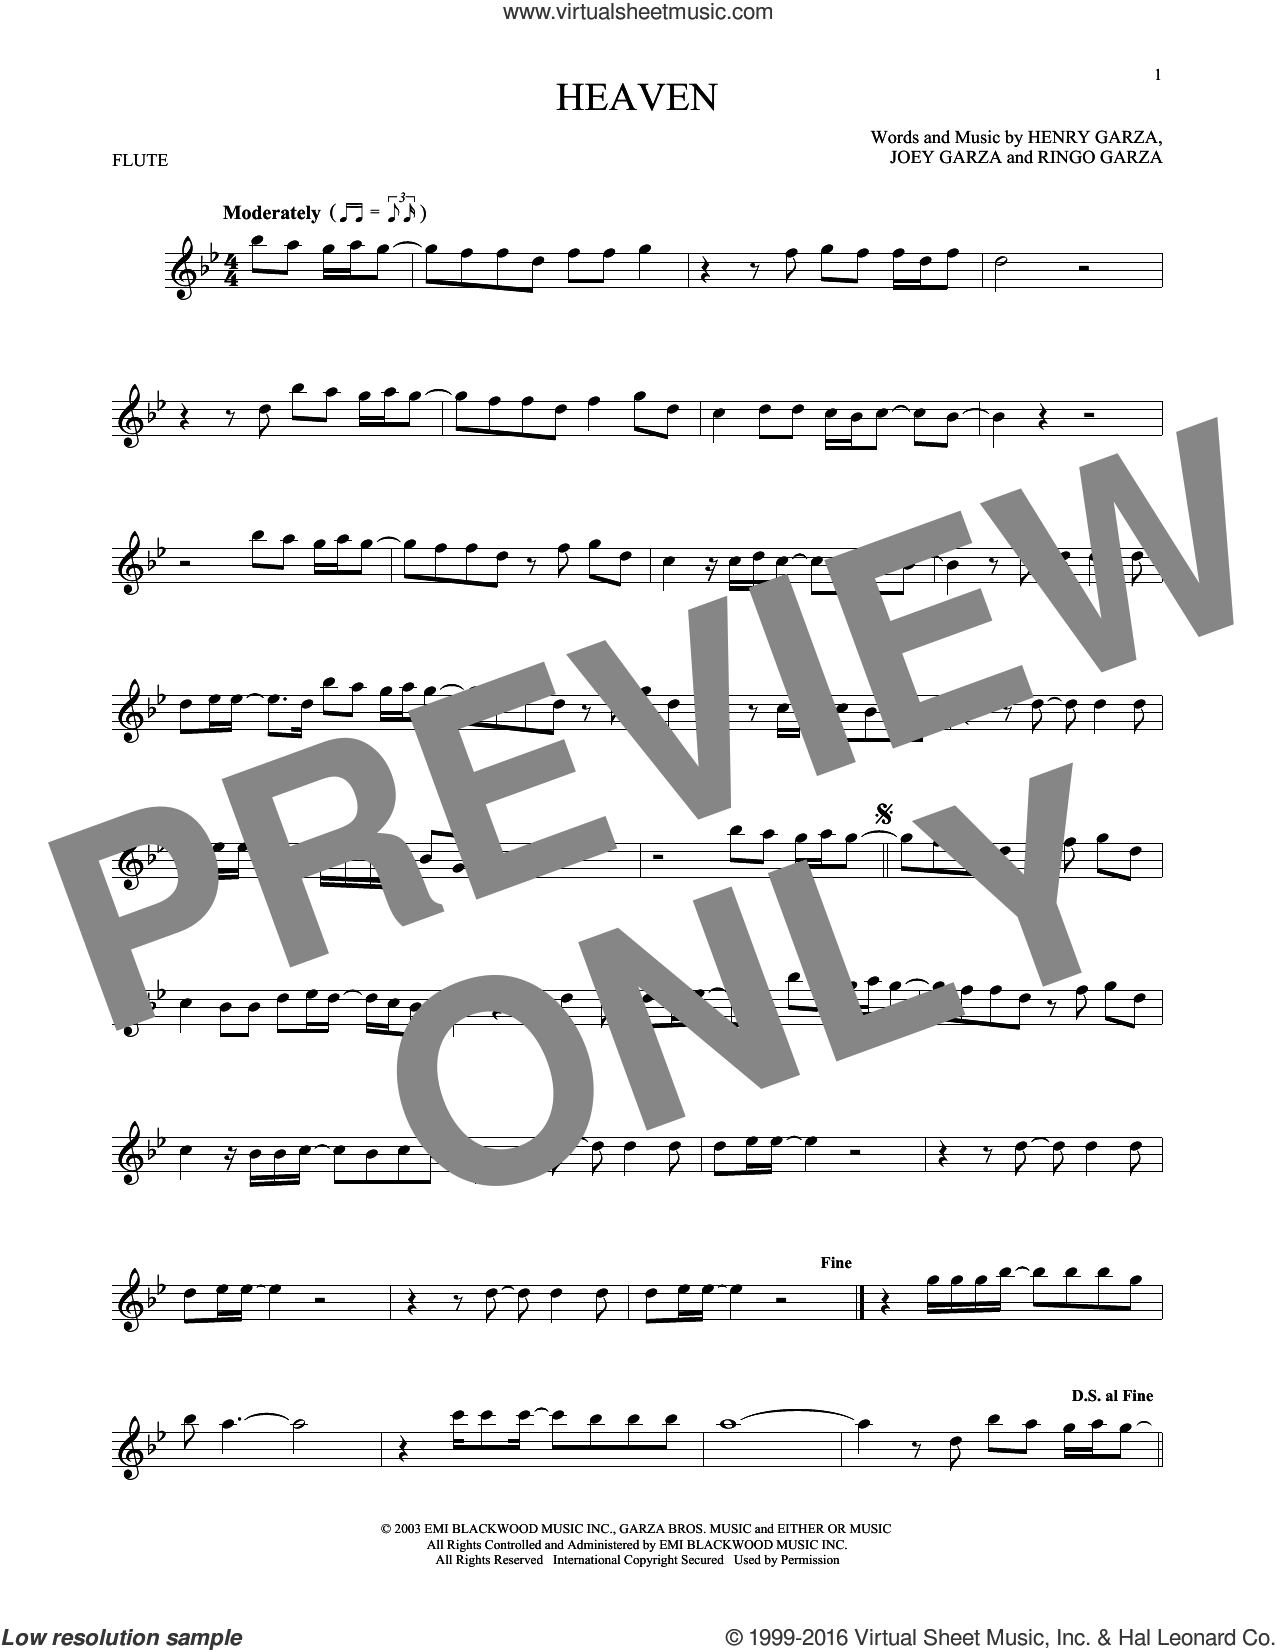 Heaven sheet music for flute solo by Los Lonely Boys, Henry Garza, Joey Garza and Ringo Garza, intermediate skill level